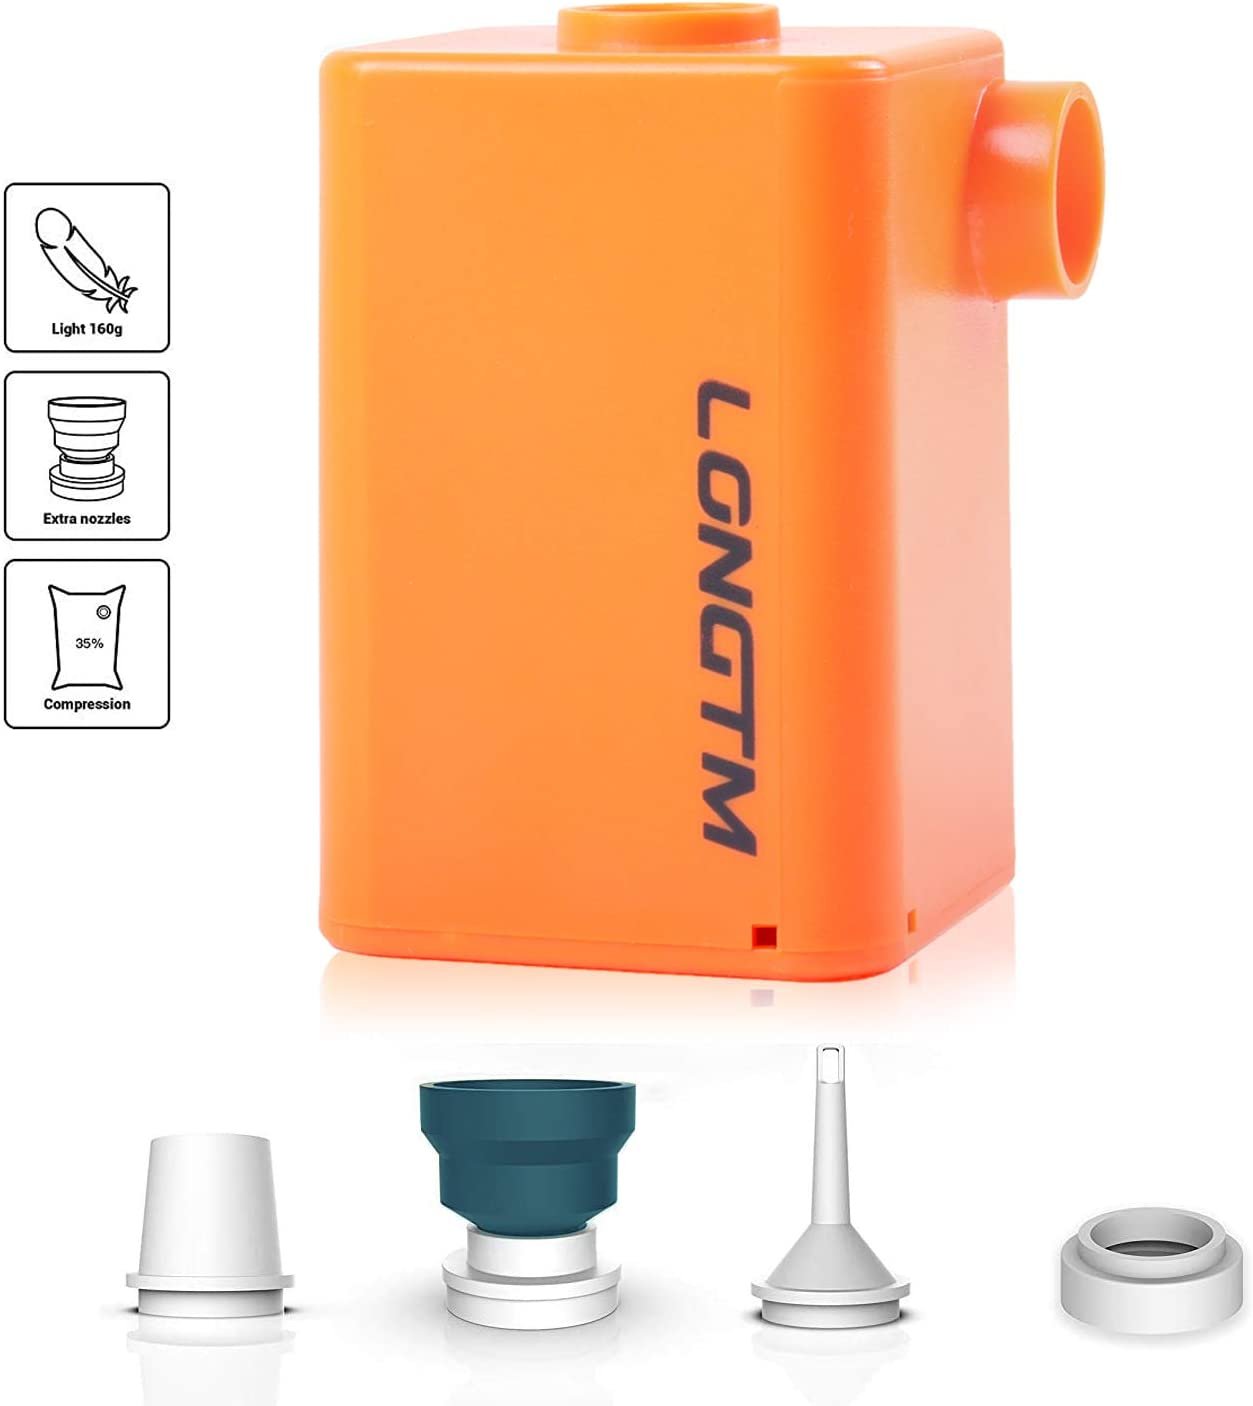 LONGTM Small Air Pump Cordless, Portable Rechargeable Battery Operated Pump for Inflatables, Air Mattress, Pool Floats, Paddle Board, Inflatable Boat Raft Toys and More (Orange)